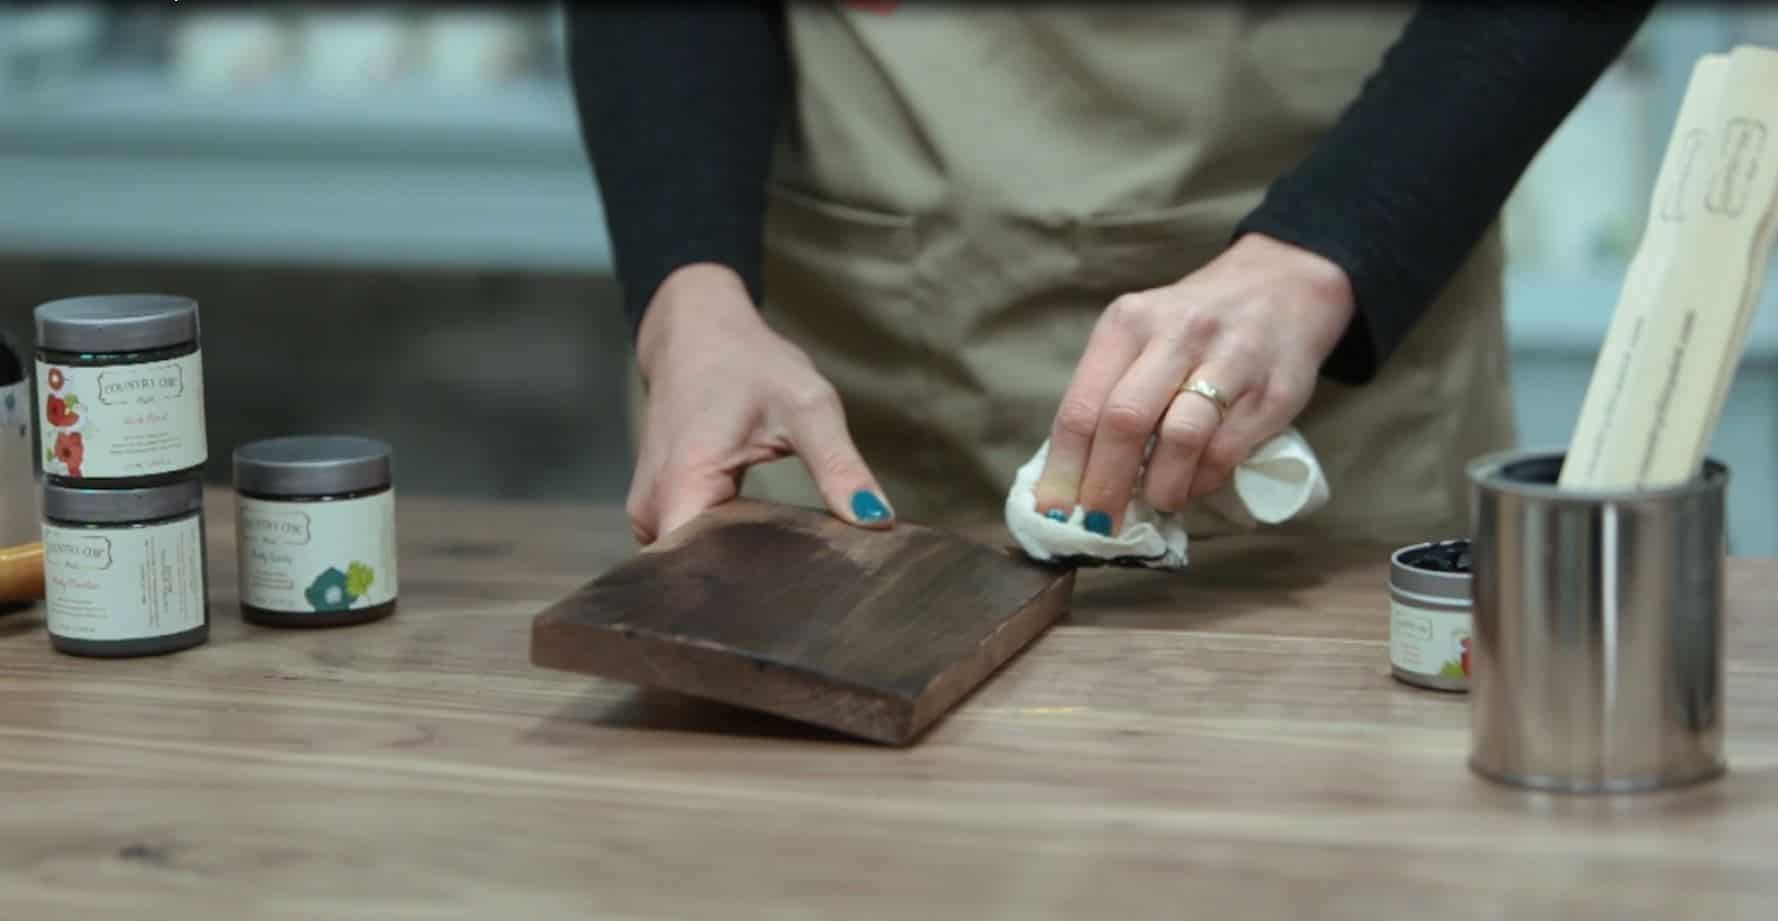 How To Create a DIY Dark Wood Stained Finish on Furniture #DIY #raw #wood #stain #glaze #furniturepaint #paintedfurniture #chalkpaint #wax #hempoil #drybrush #howto #video #tutorial #countrychicpaint - blog.countrychicpaint.com